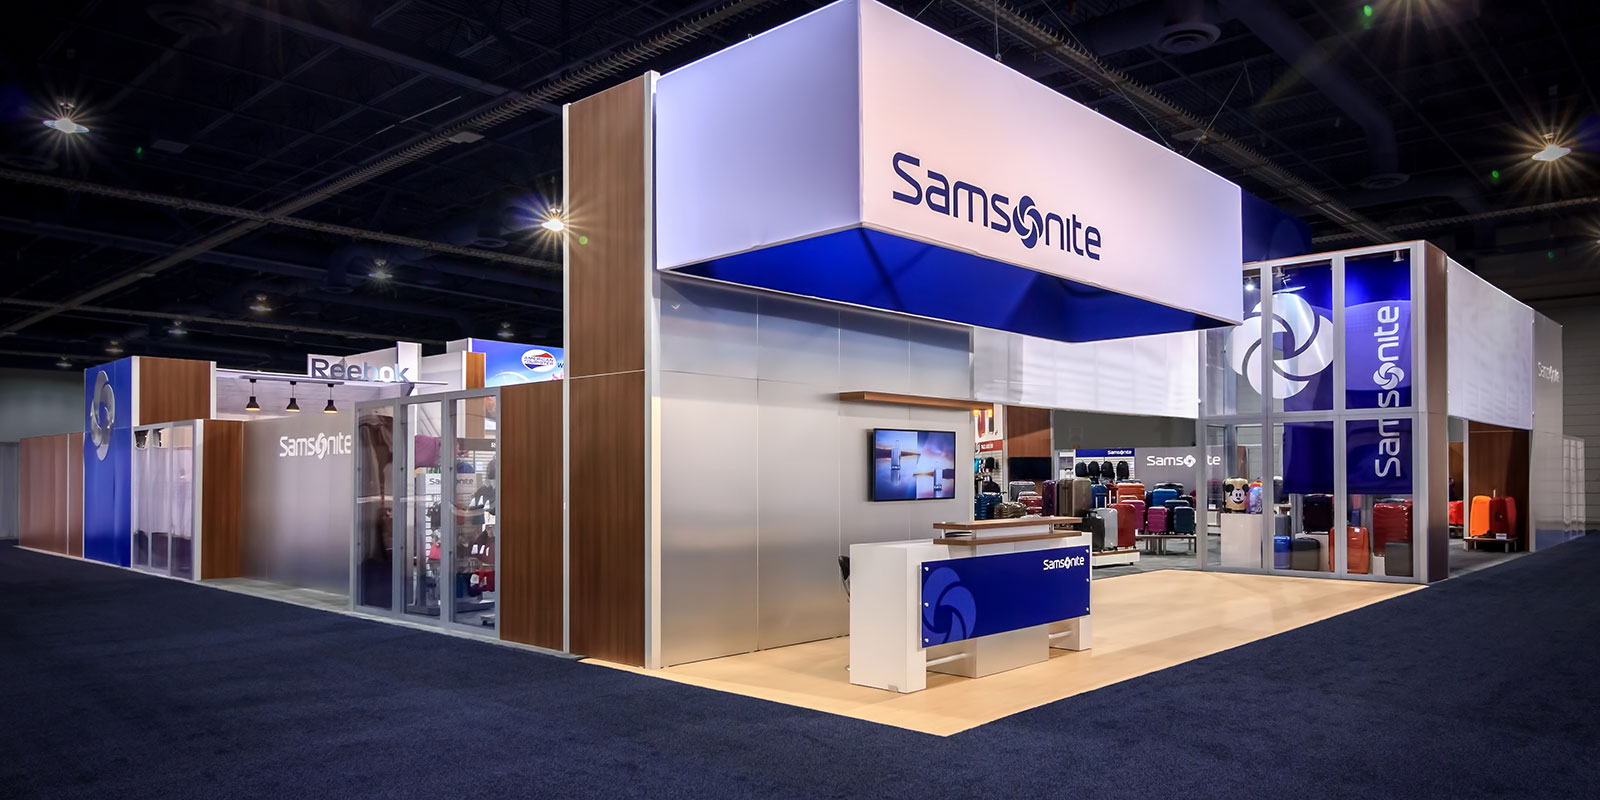 Hill & Partners Rental Branded Environment Trade Show Exhibit for Samsonite